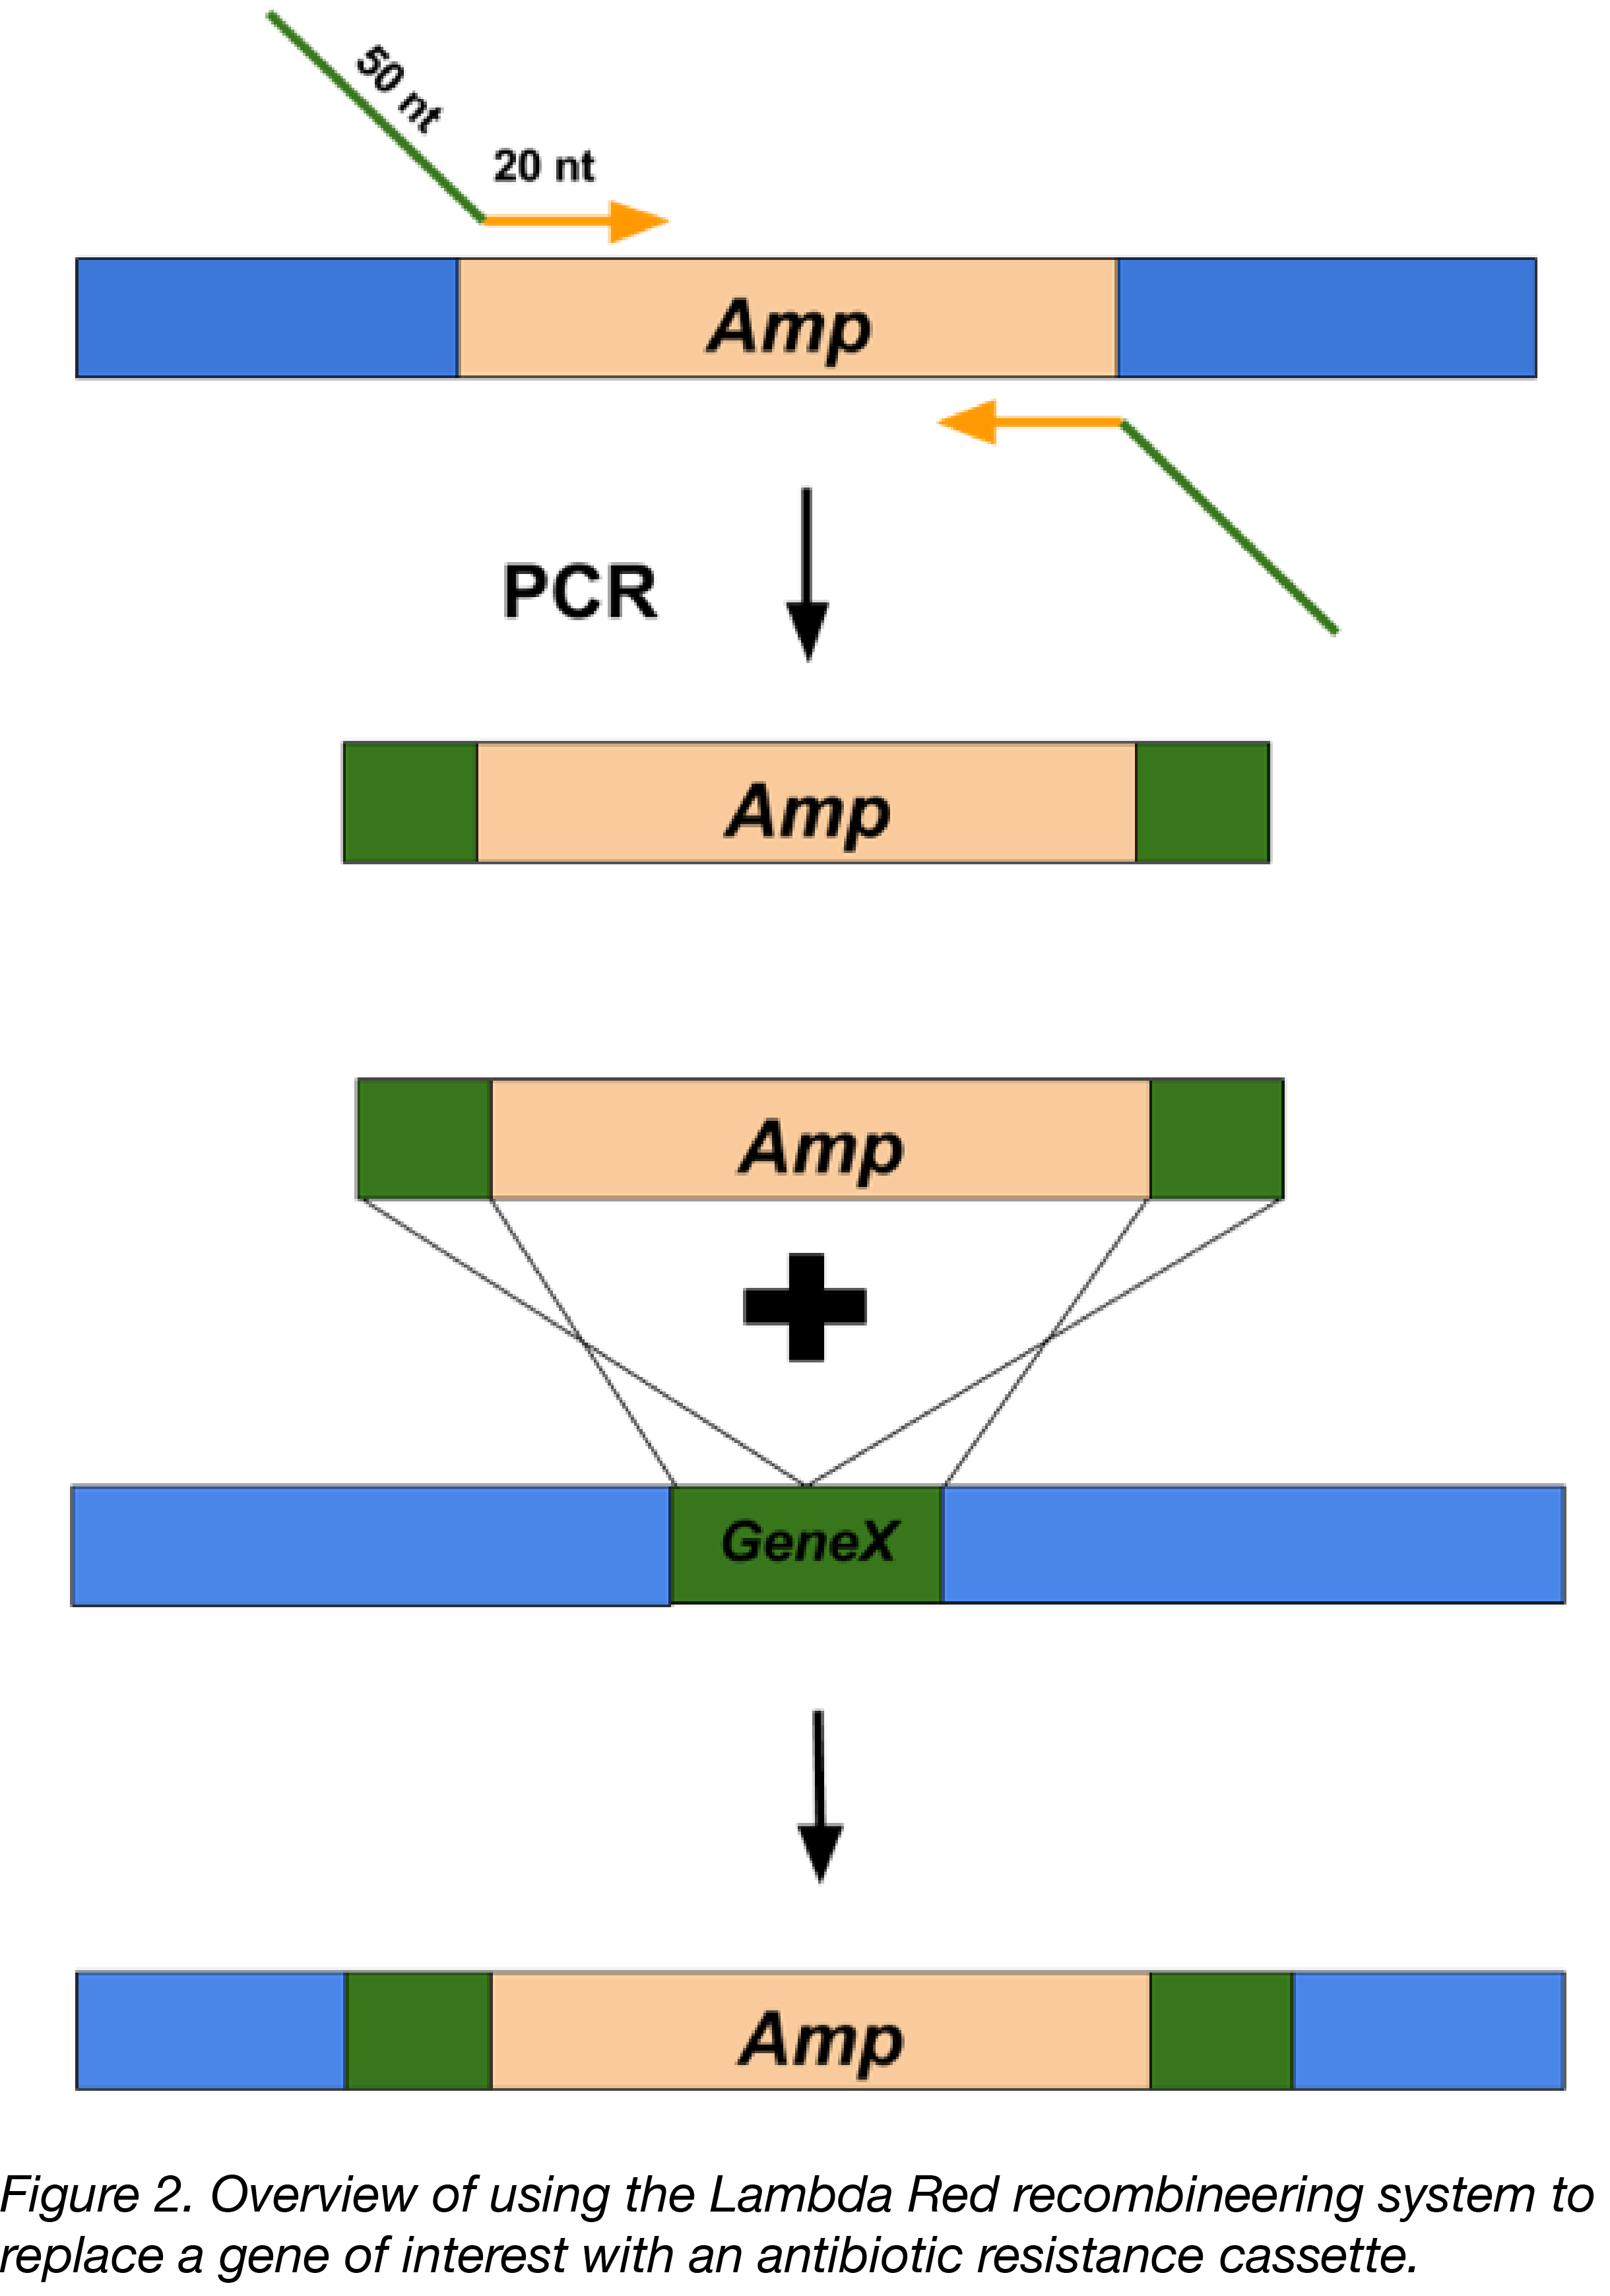 Overview of the Lambda Red recombination process